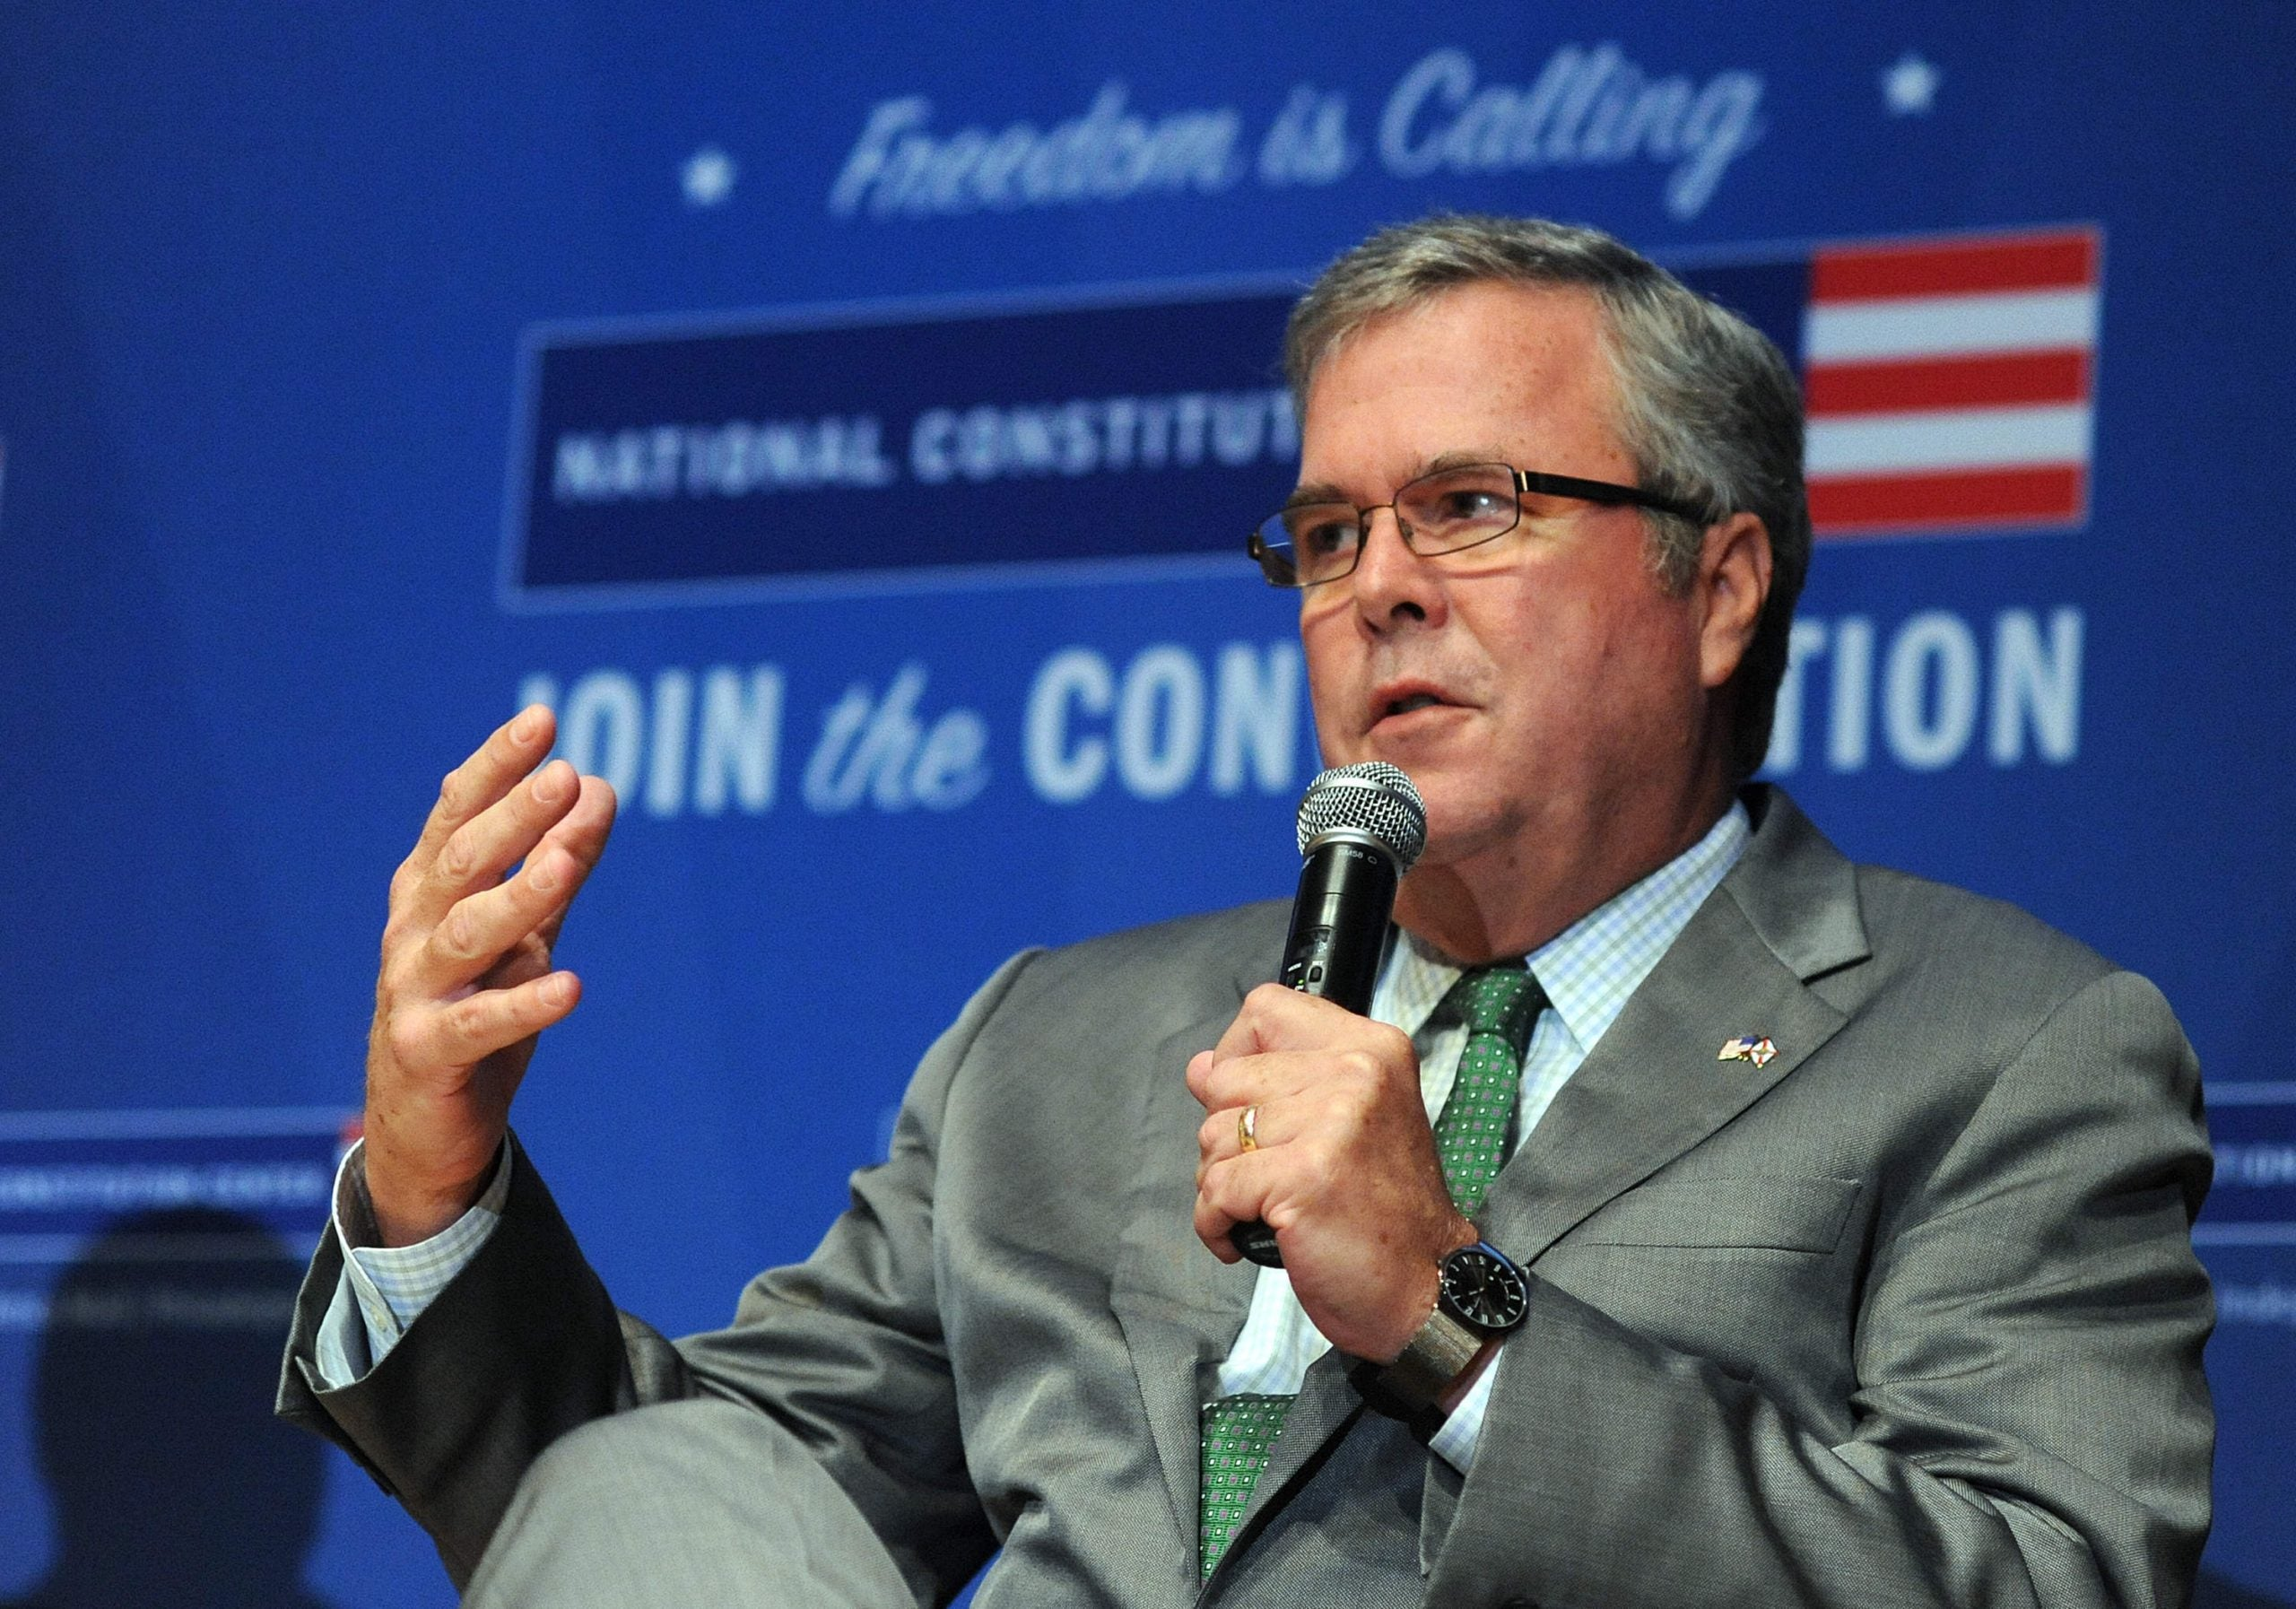 Bush vs Clinton 2: How two political dynasties captured the American people